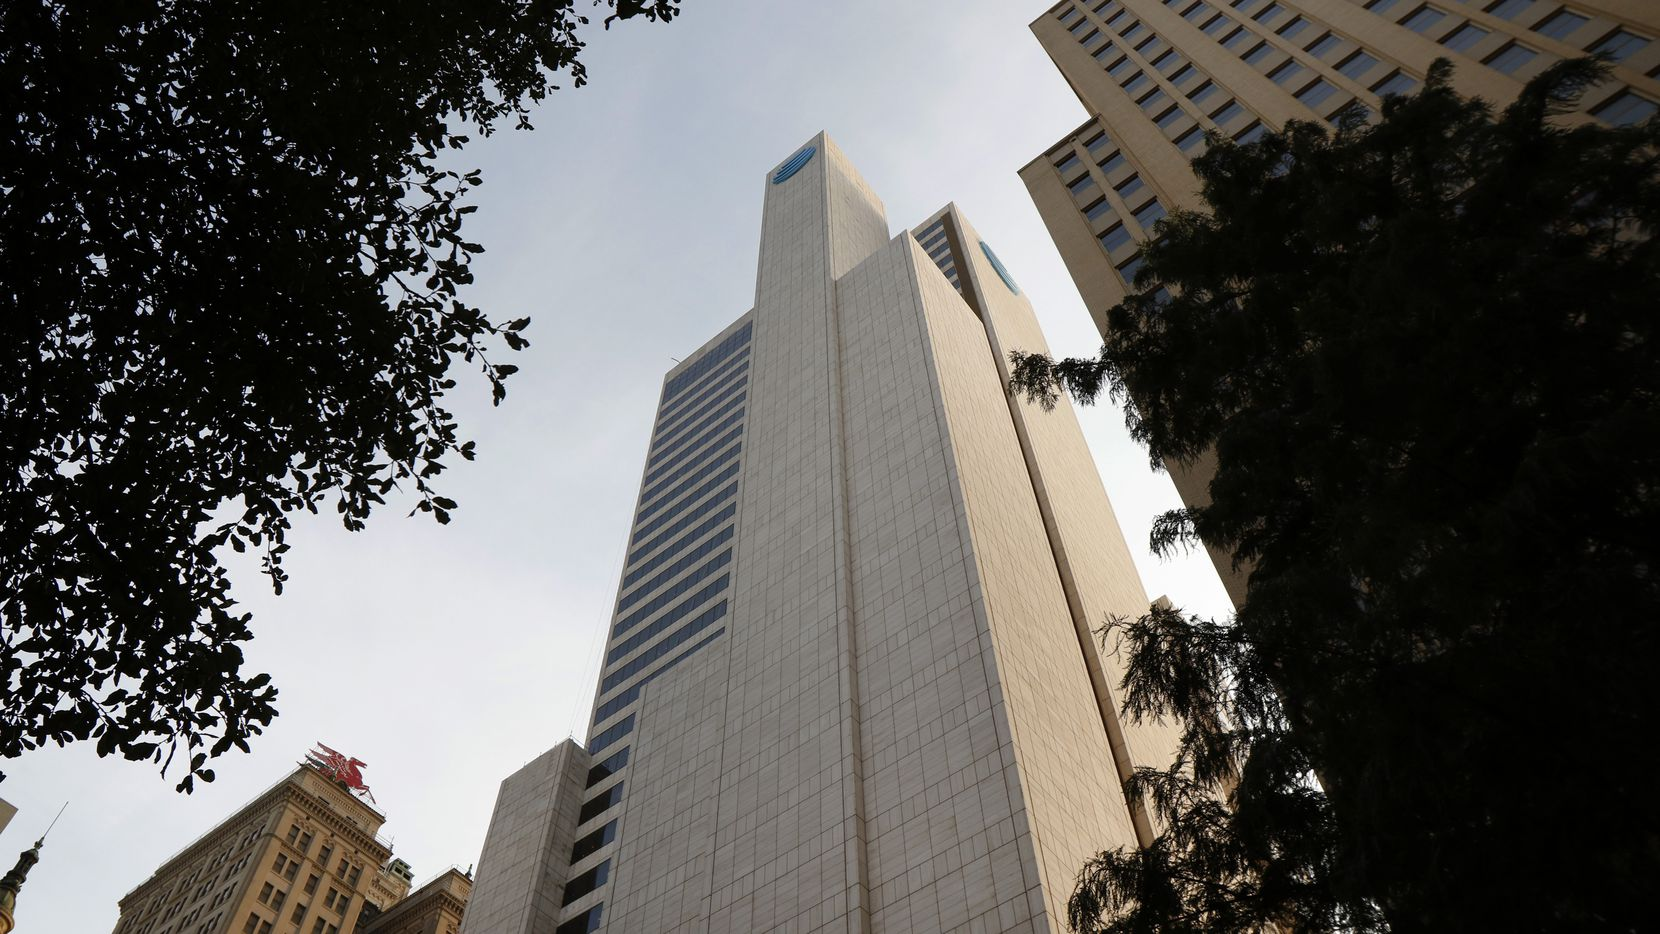 The 37-story Whitacre Tower was built in 1982 in downtown Dallas